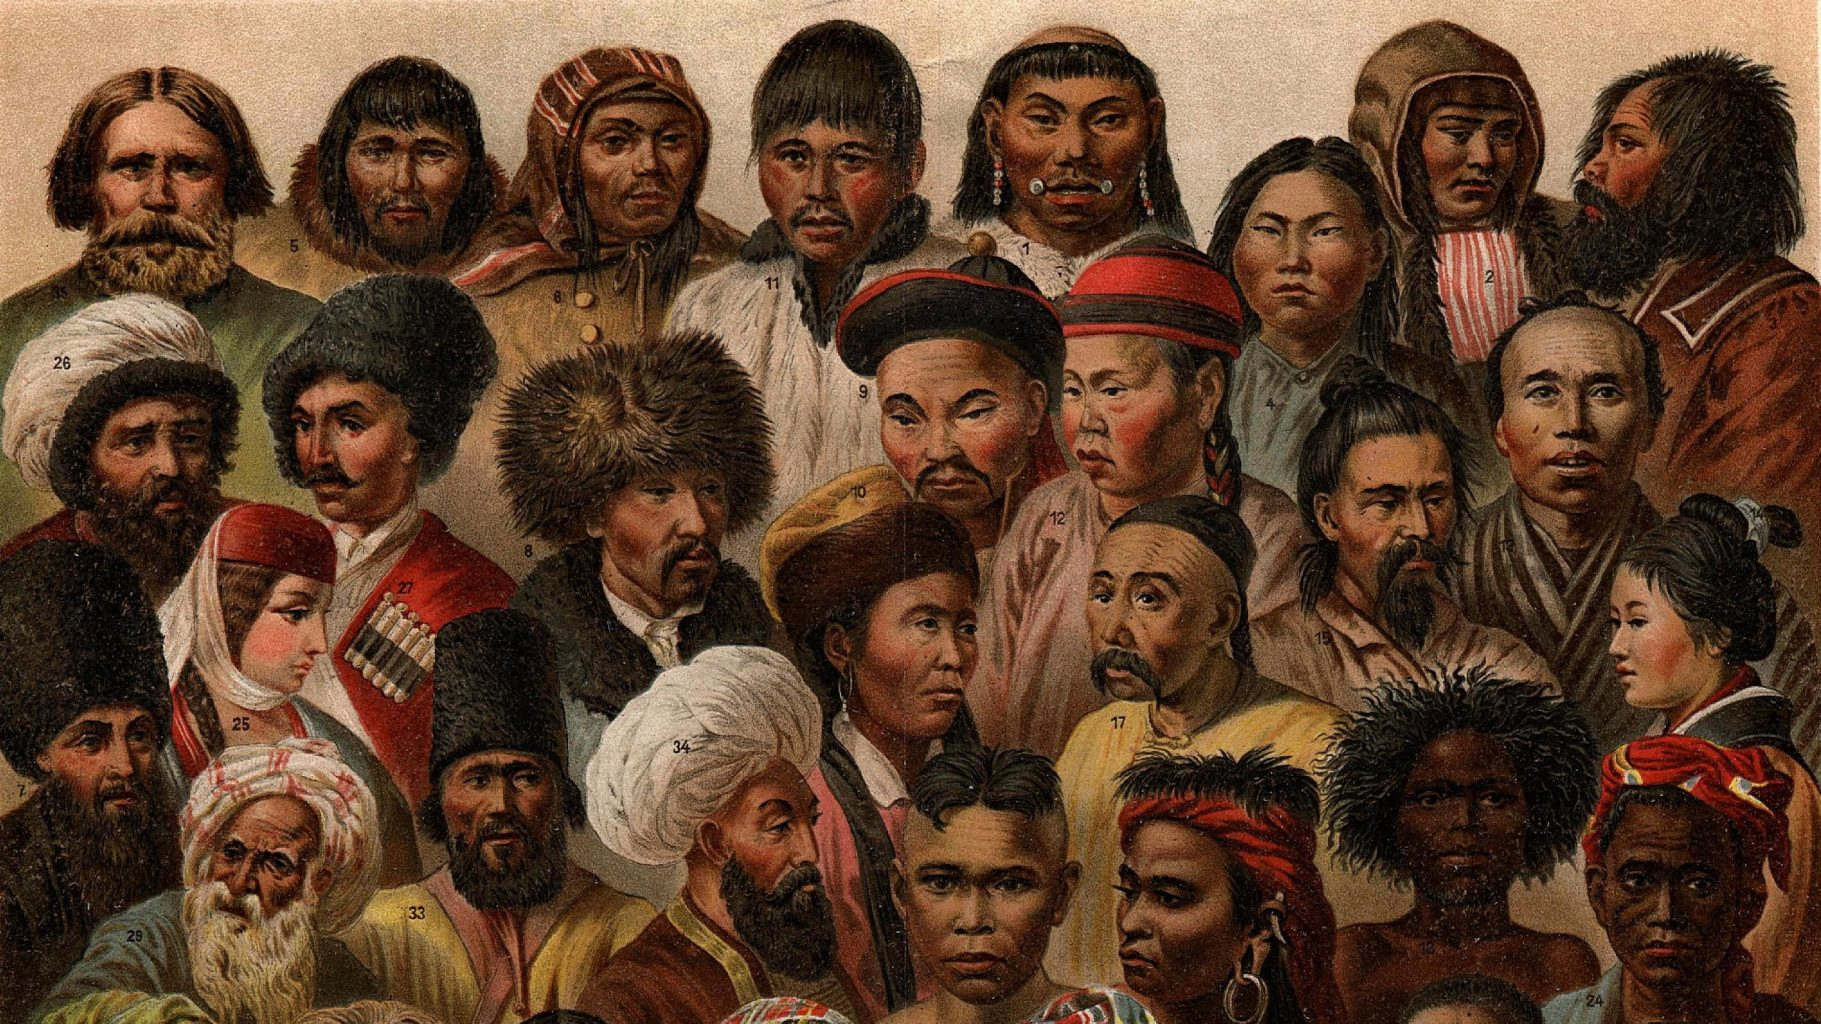 Image: Many people's faces from may ethnicities